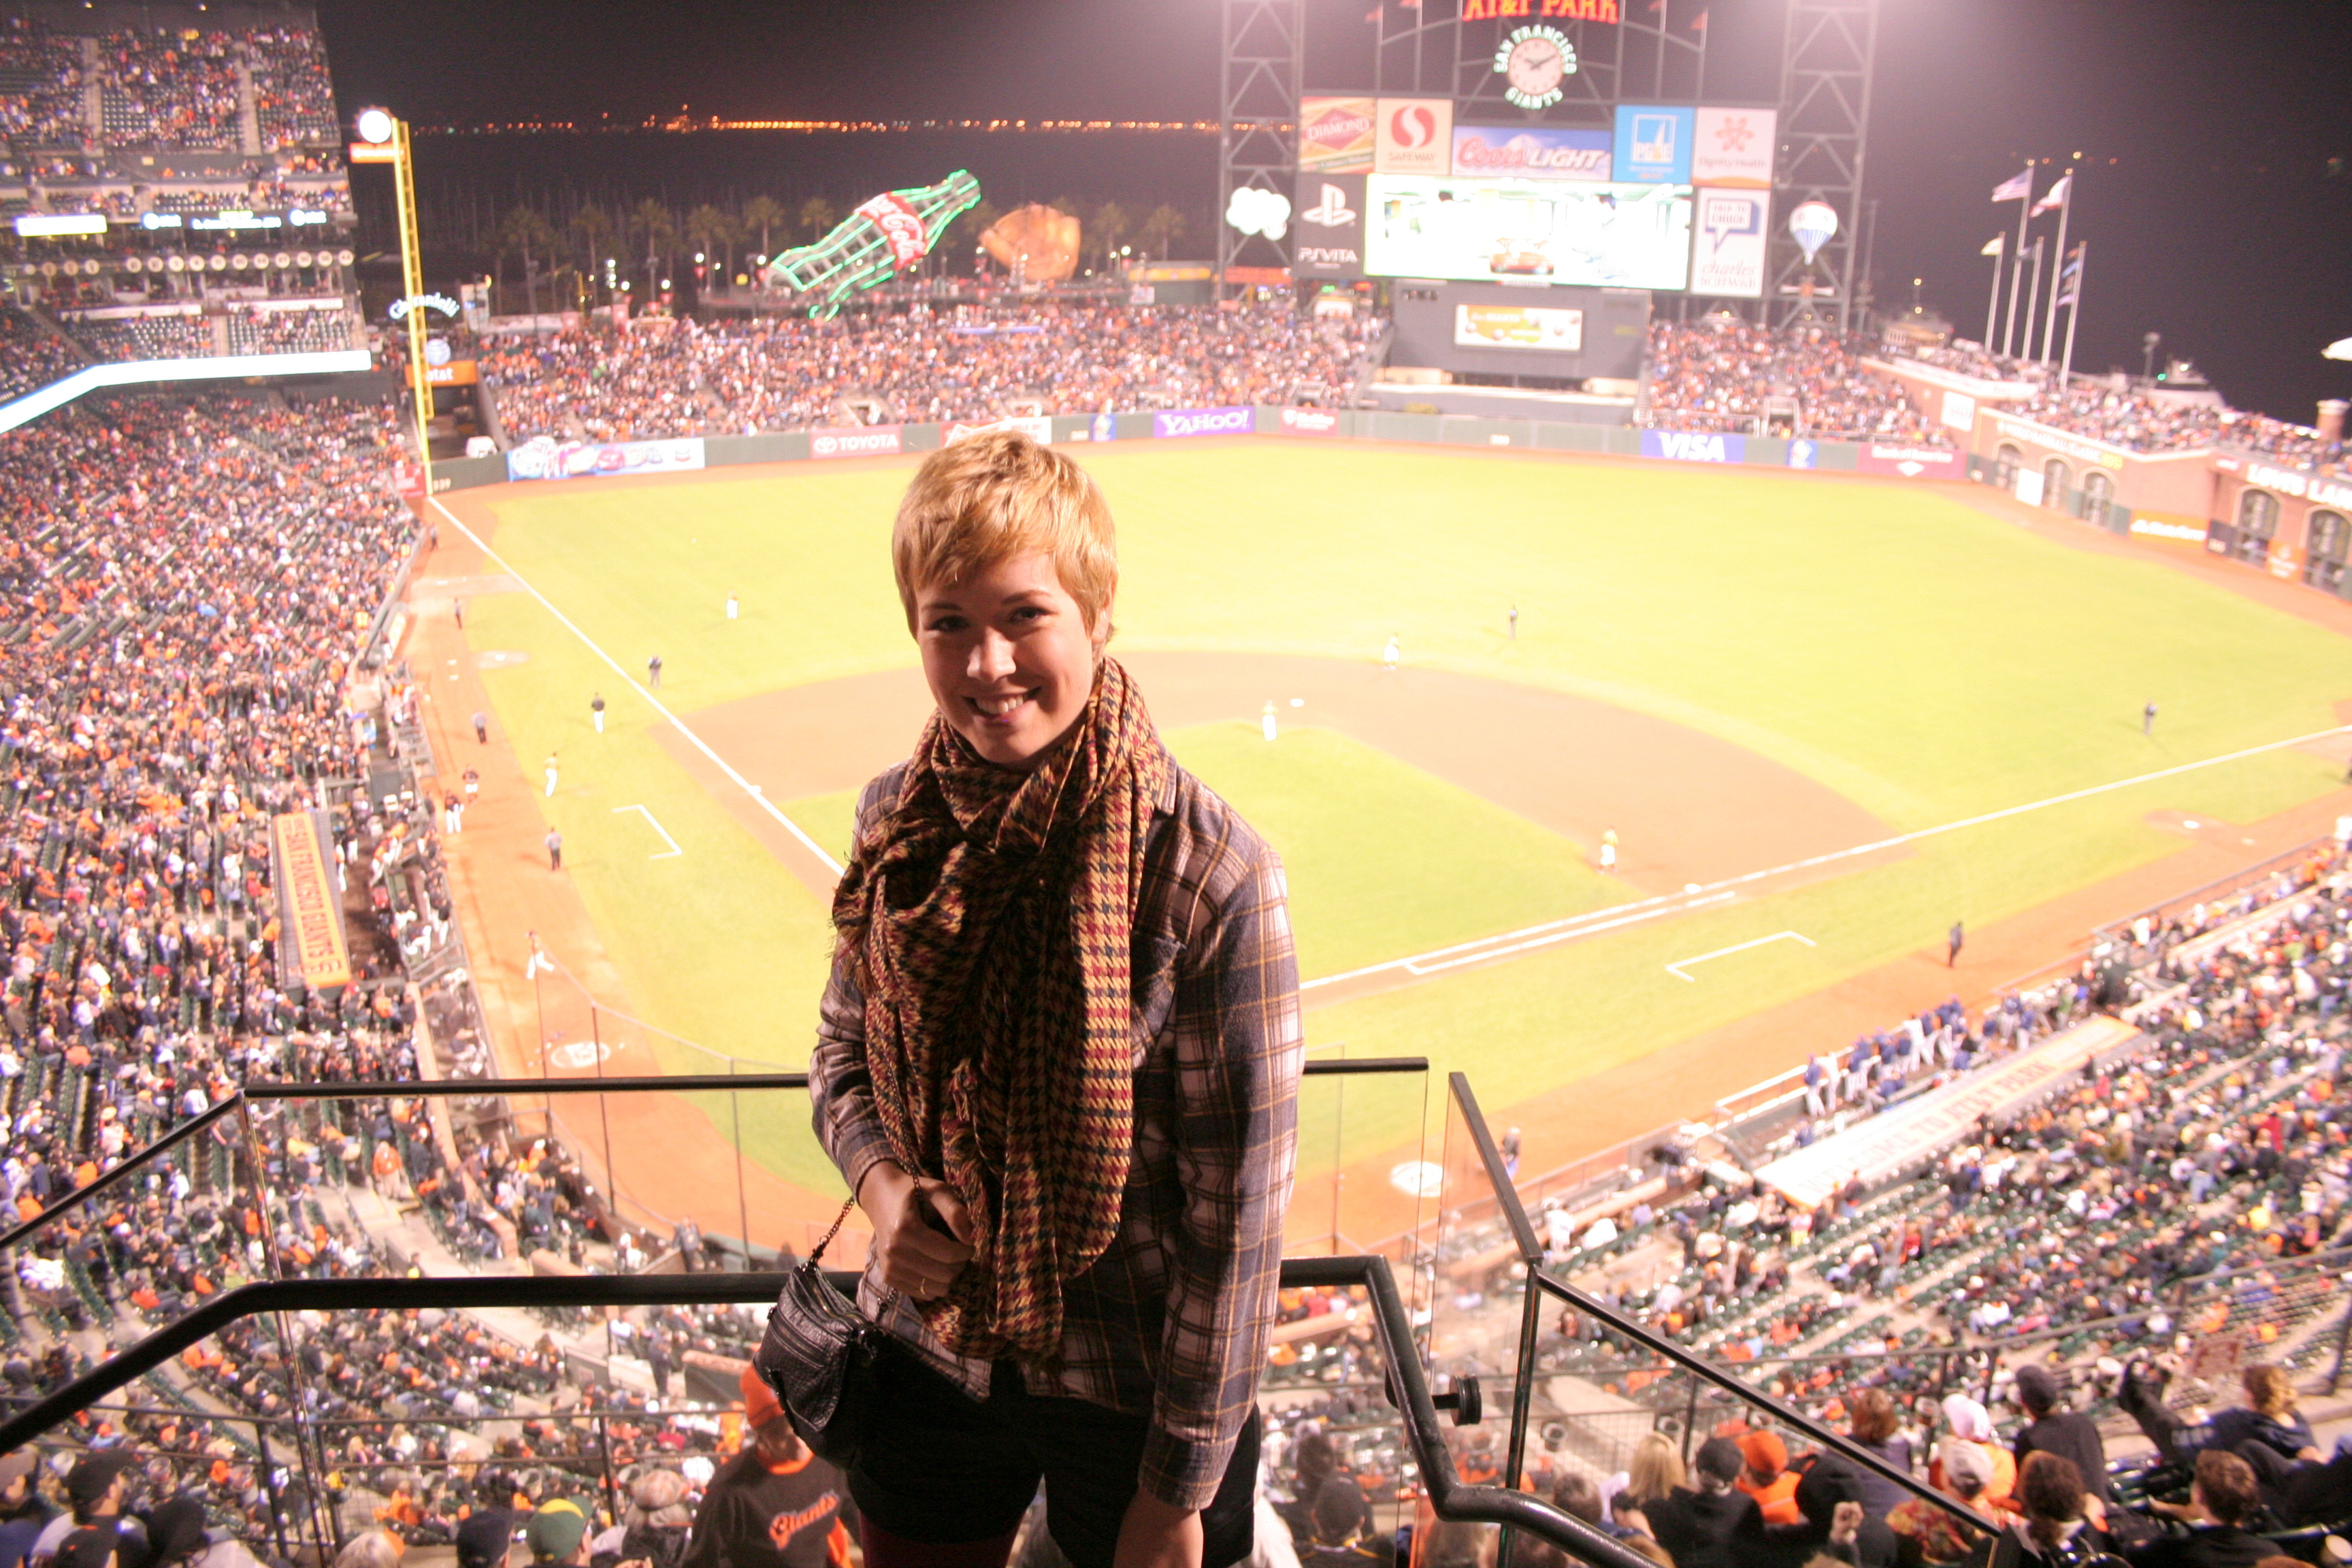 San Francisco Giants played at AT&T Park. I wore H&M scarf, vintage flannel shirt, Express shorts, H&M tights, Vince Camuto Boots